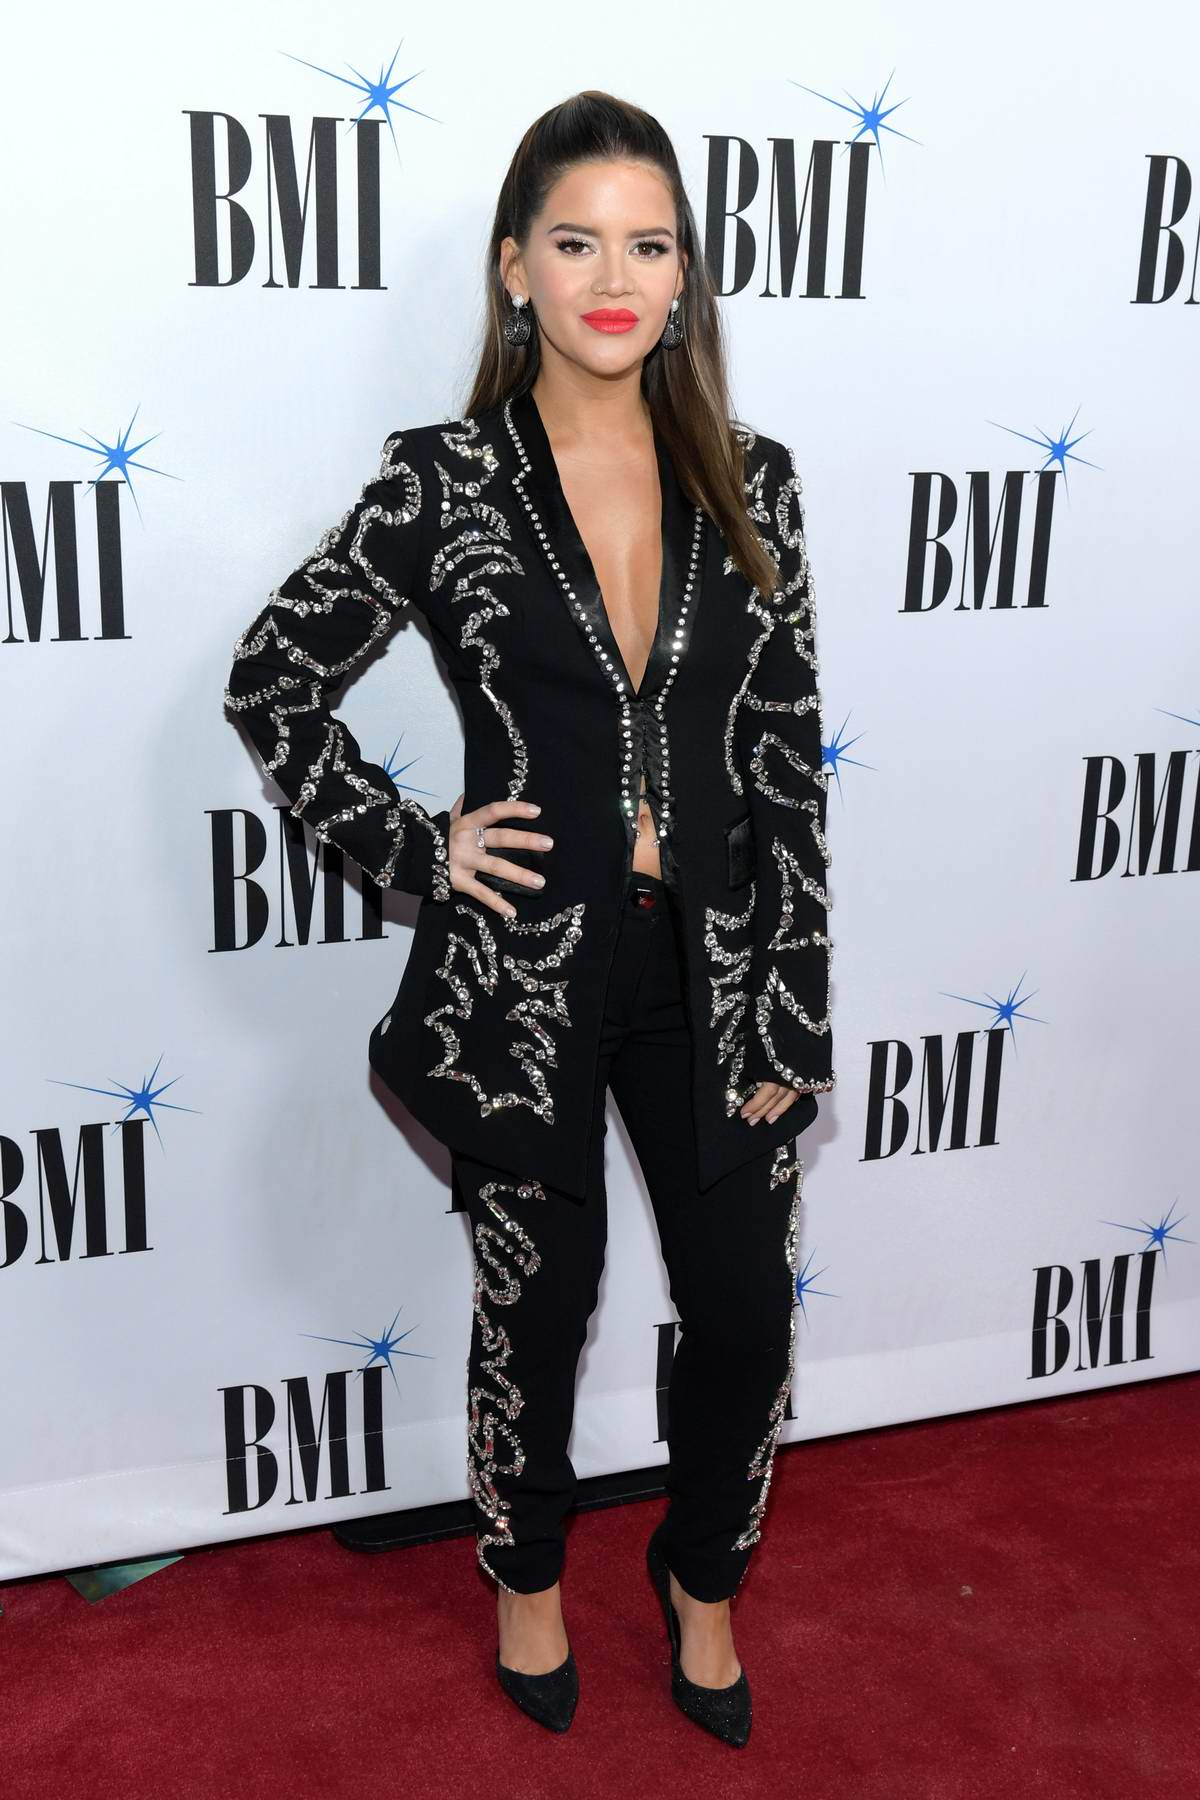 Maren Morris attends the 67th Annual BMI Country Awards in Nashville, TN